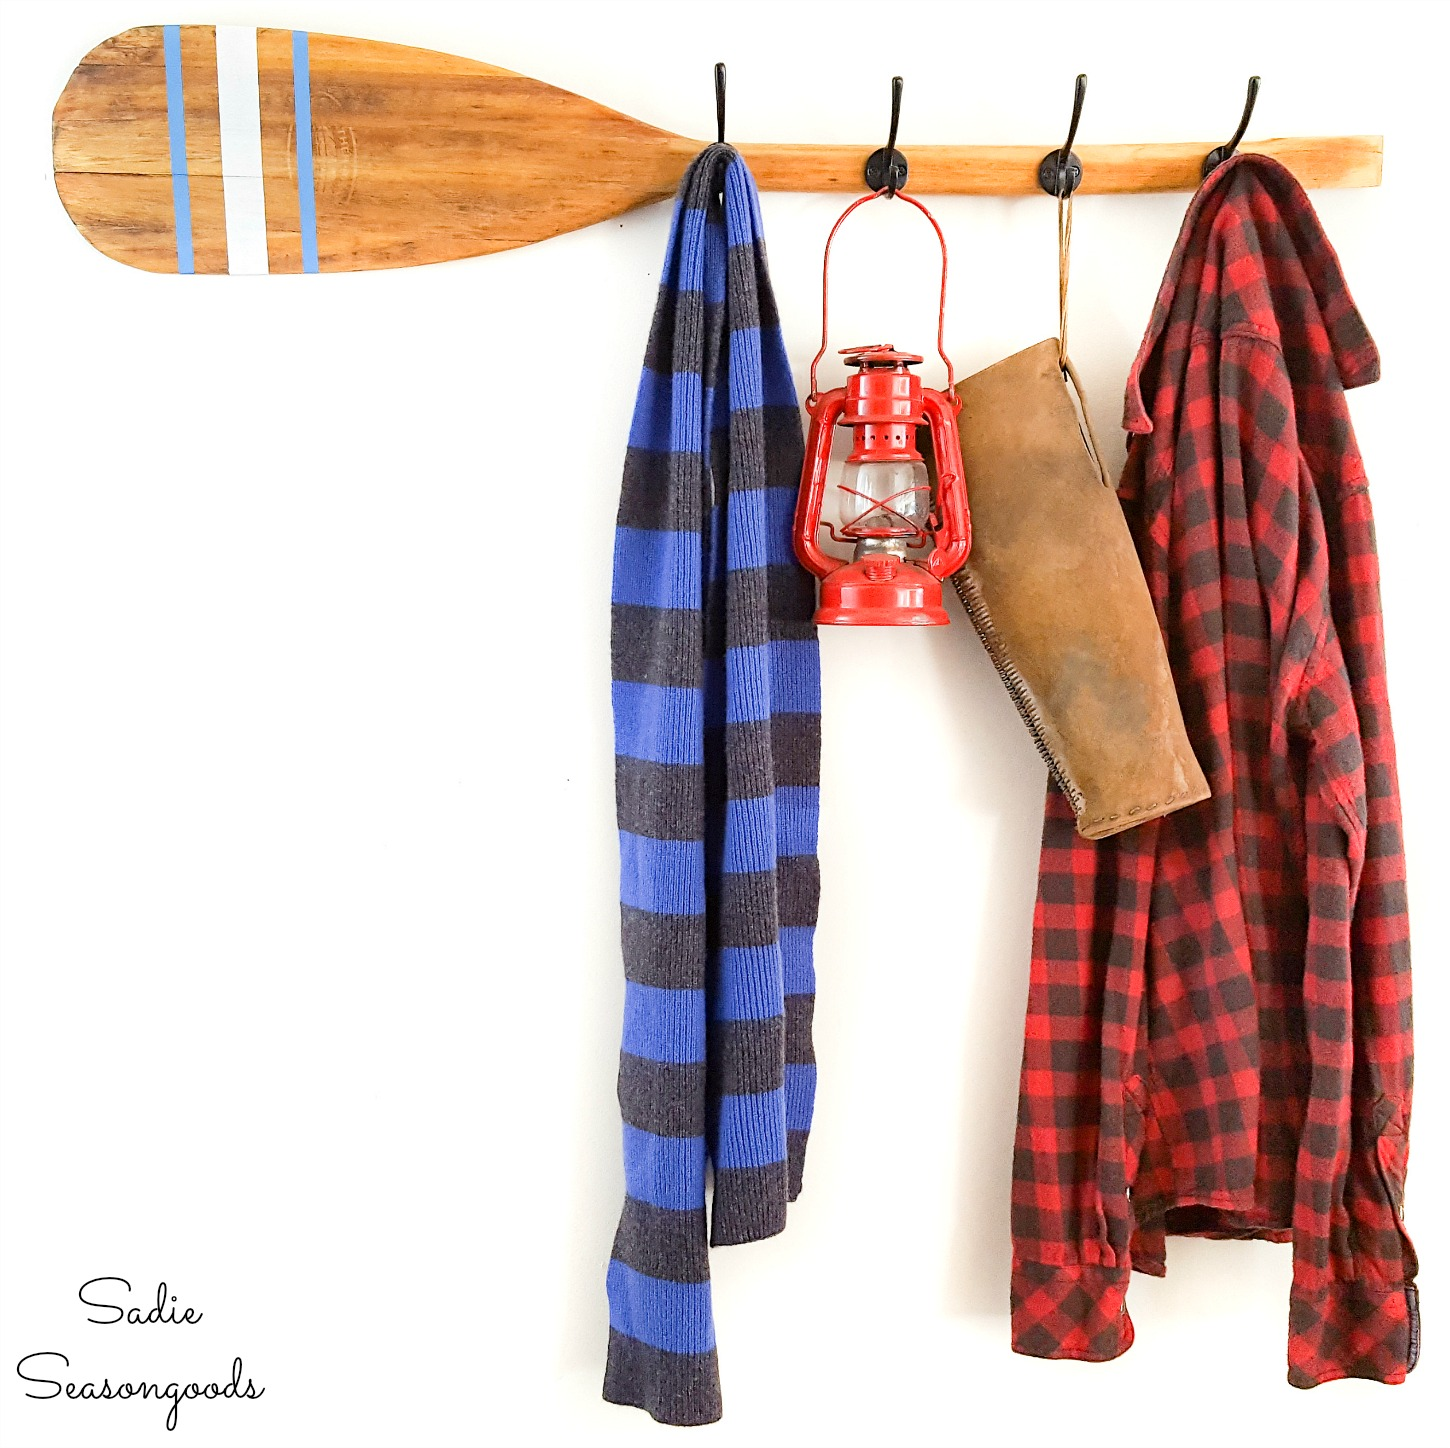 Upcycling a Boat Oar as a Nautical Coat Rack